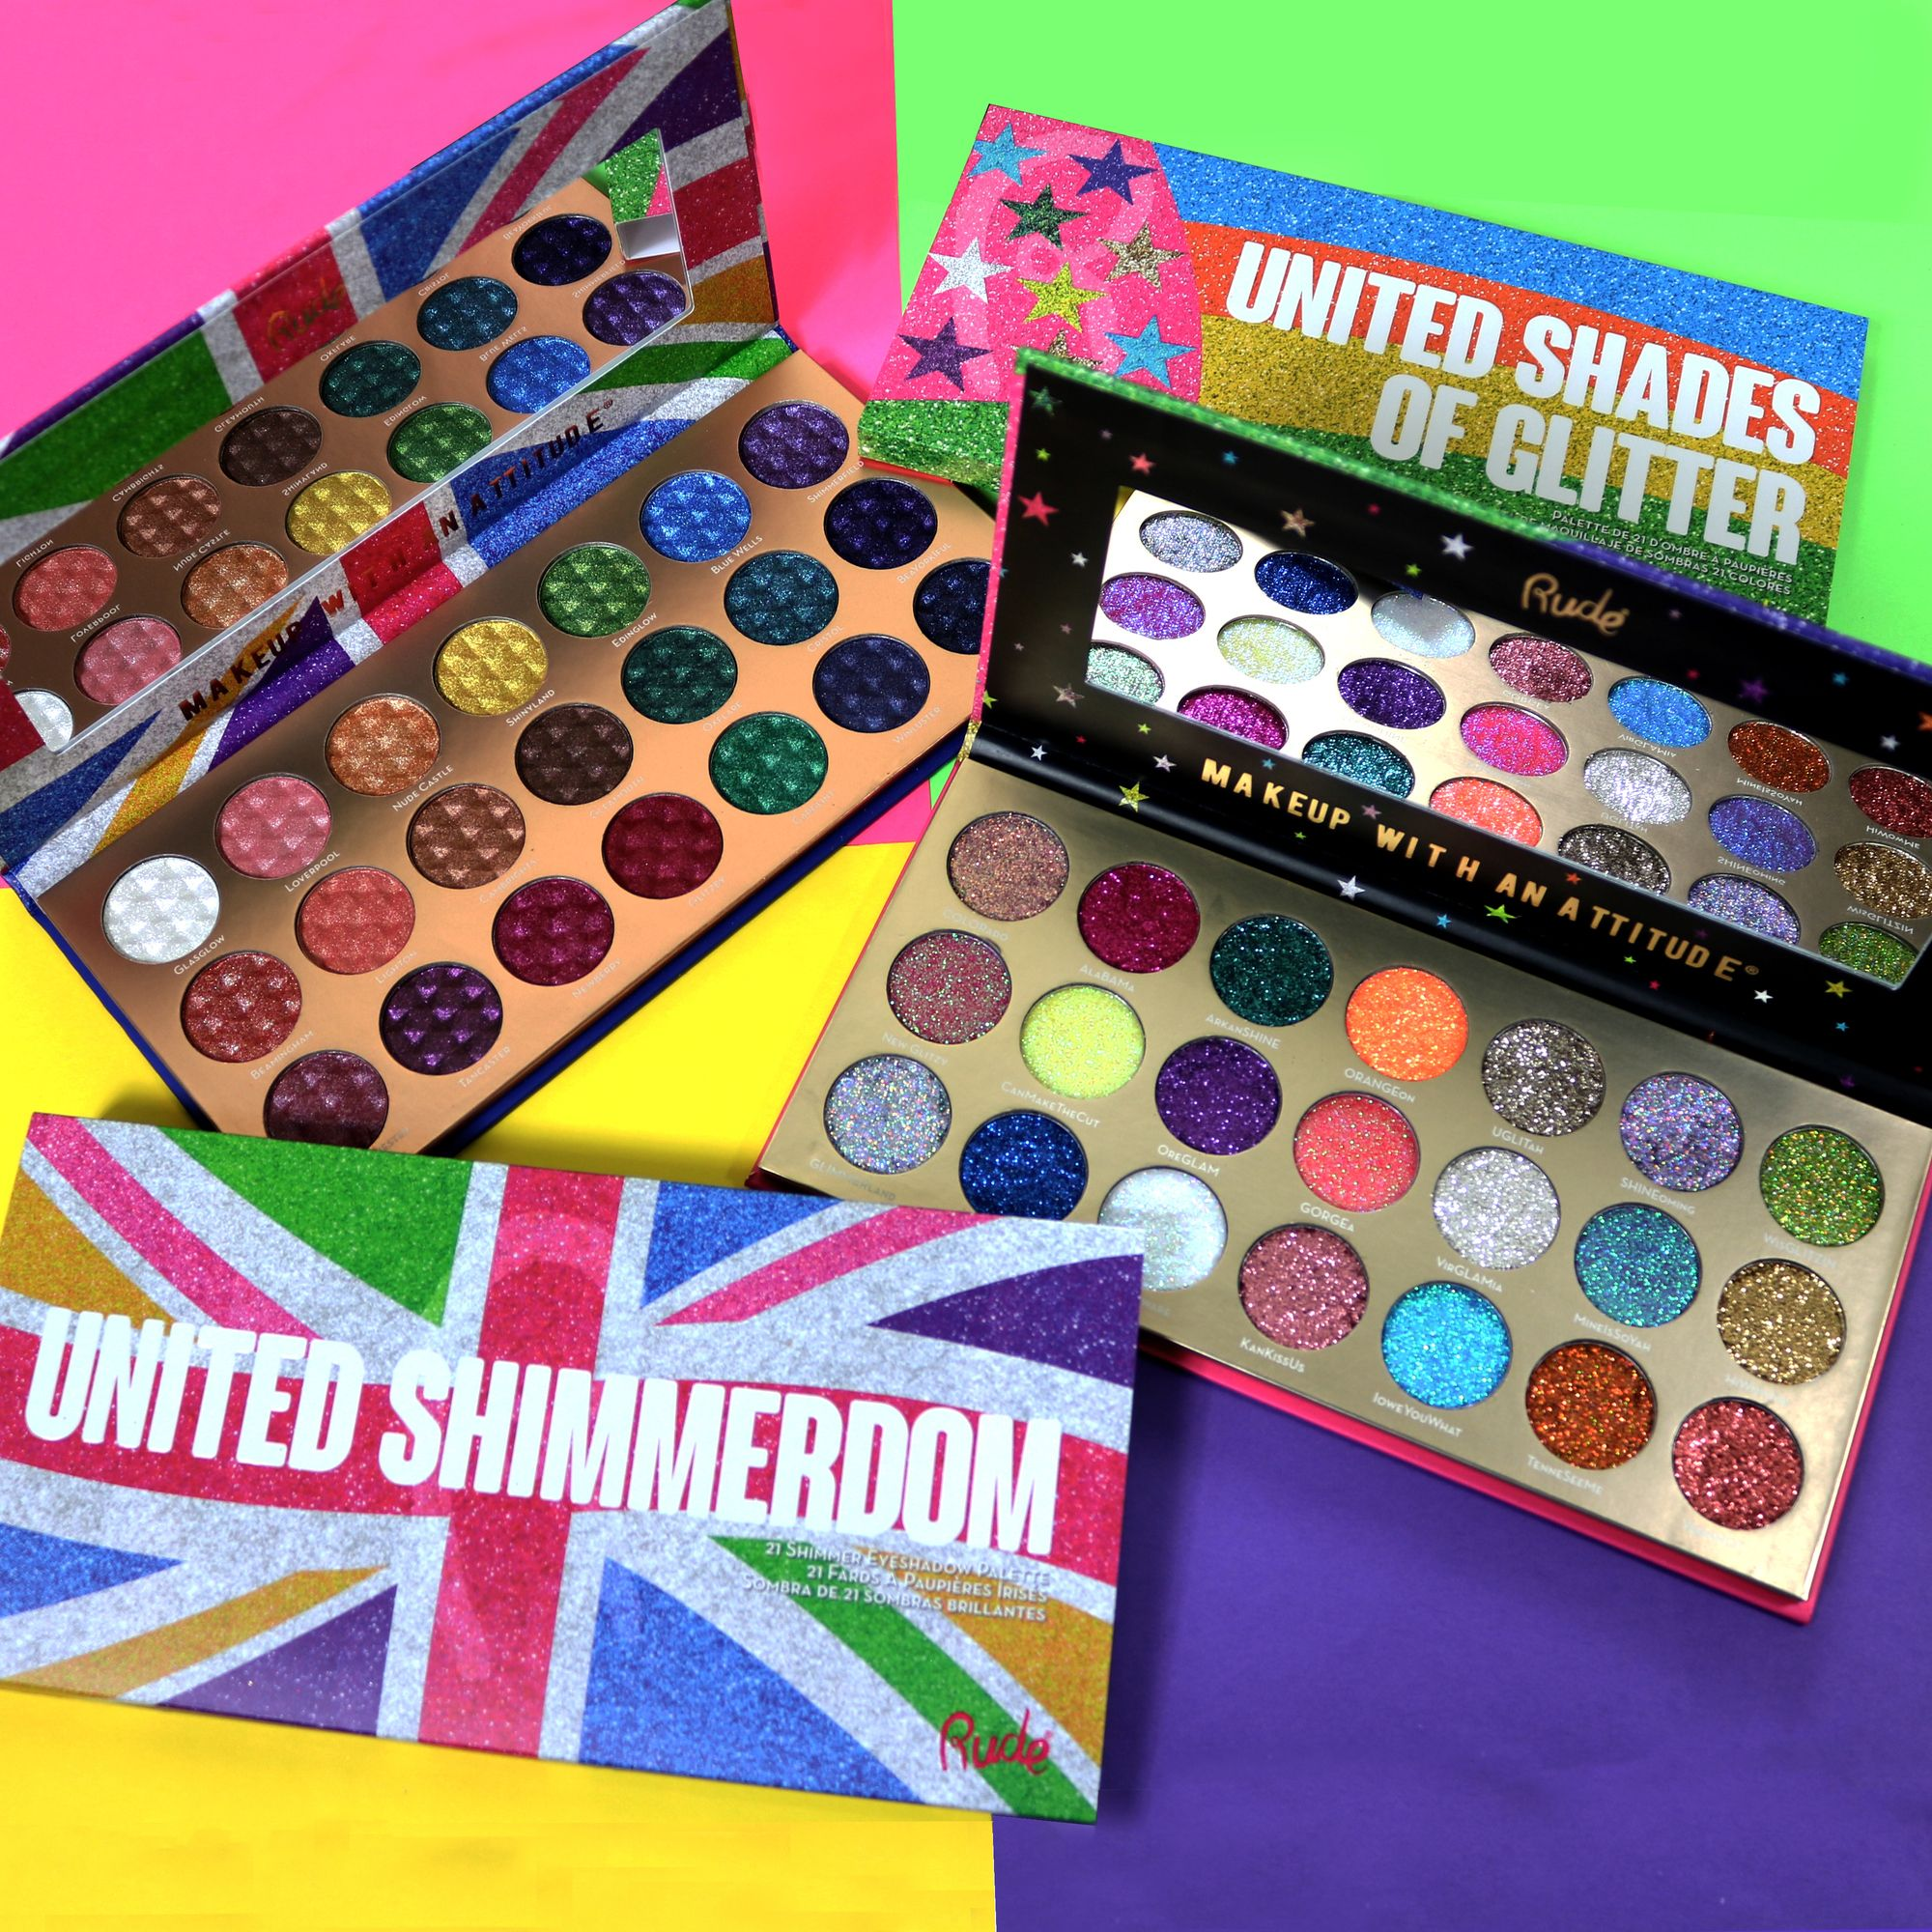 Coming Soon!!! 🎉 Our United Shades of Glitter will be